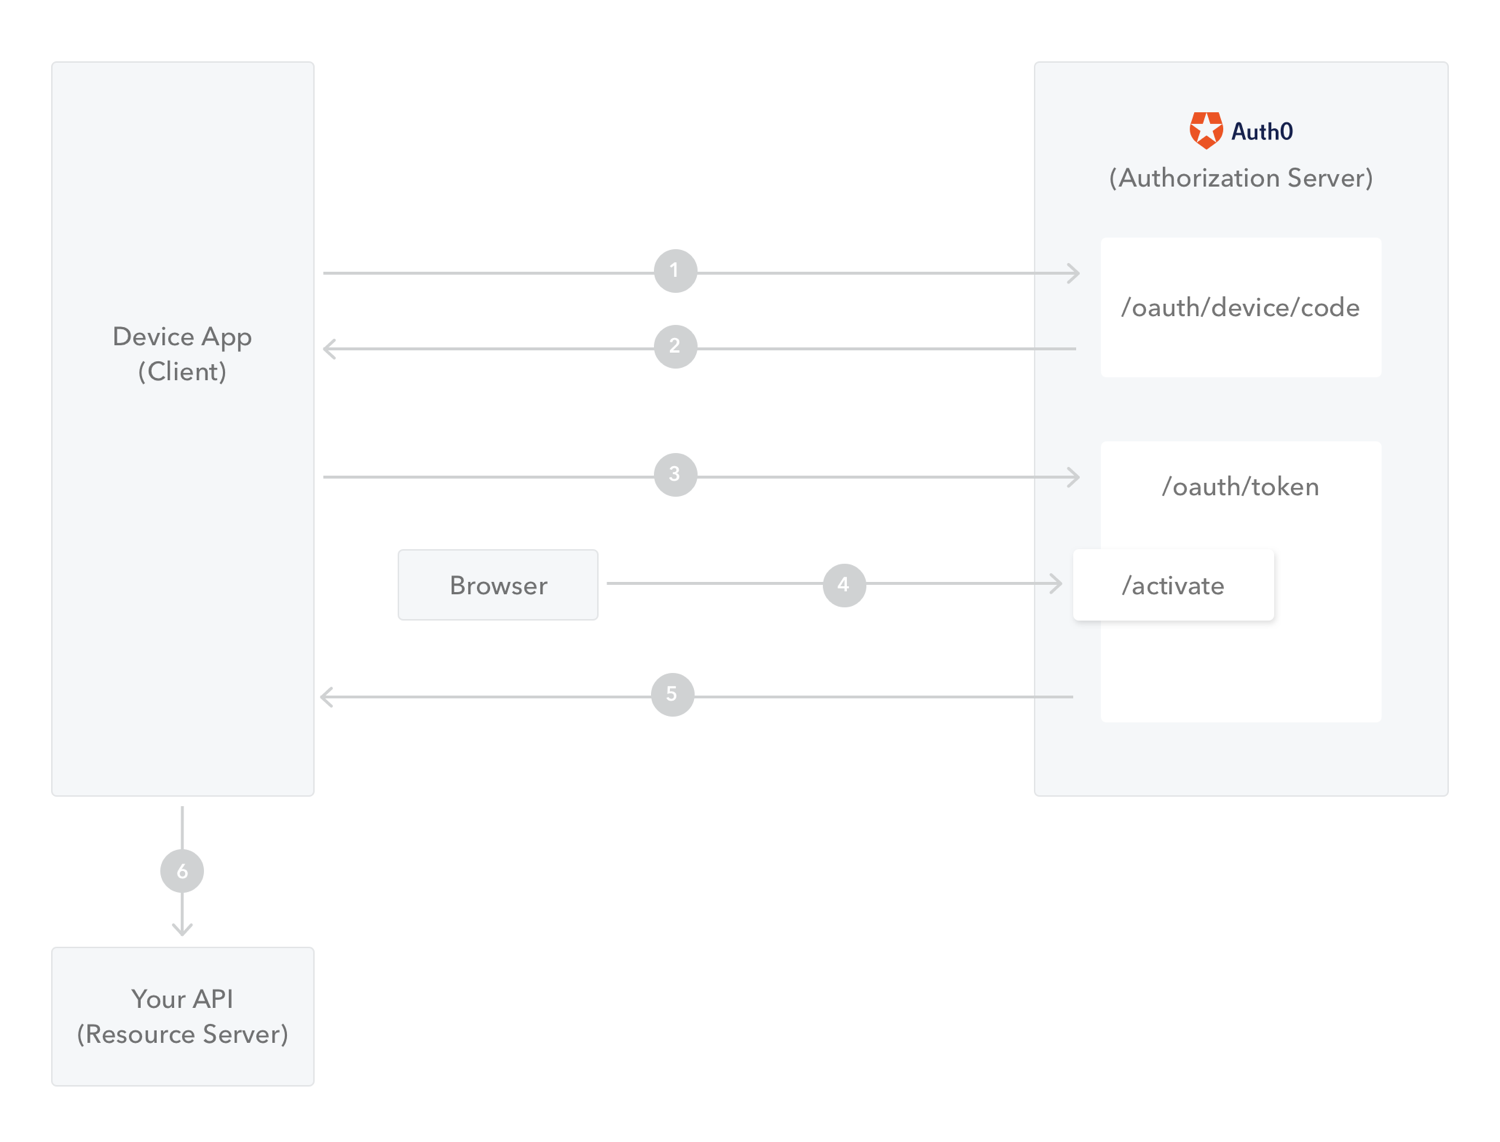 Flow Overview for Device Apps